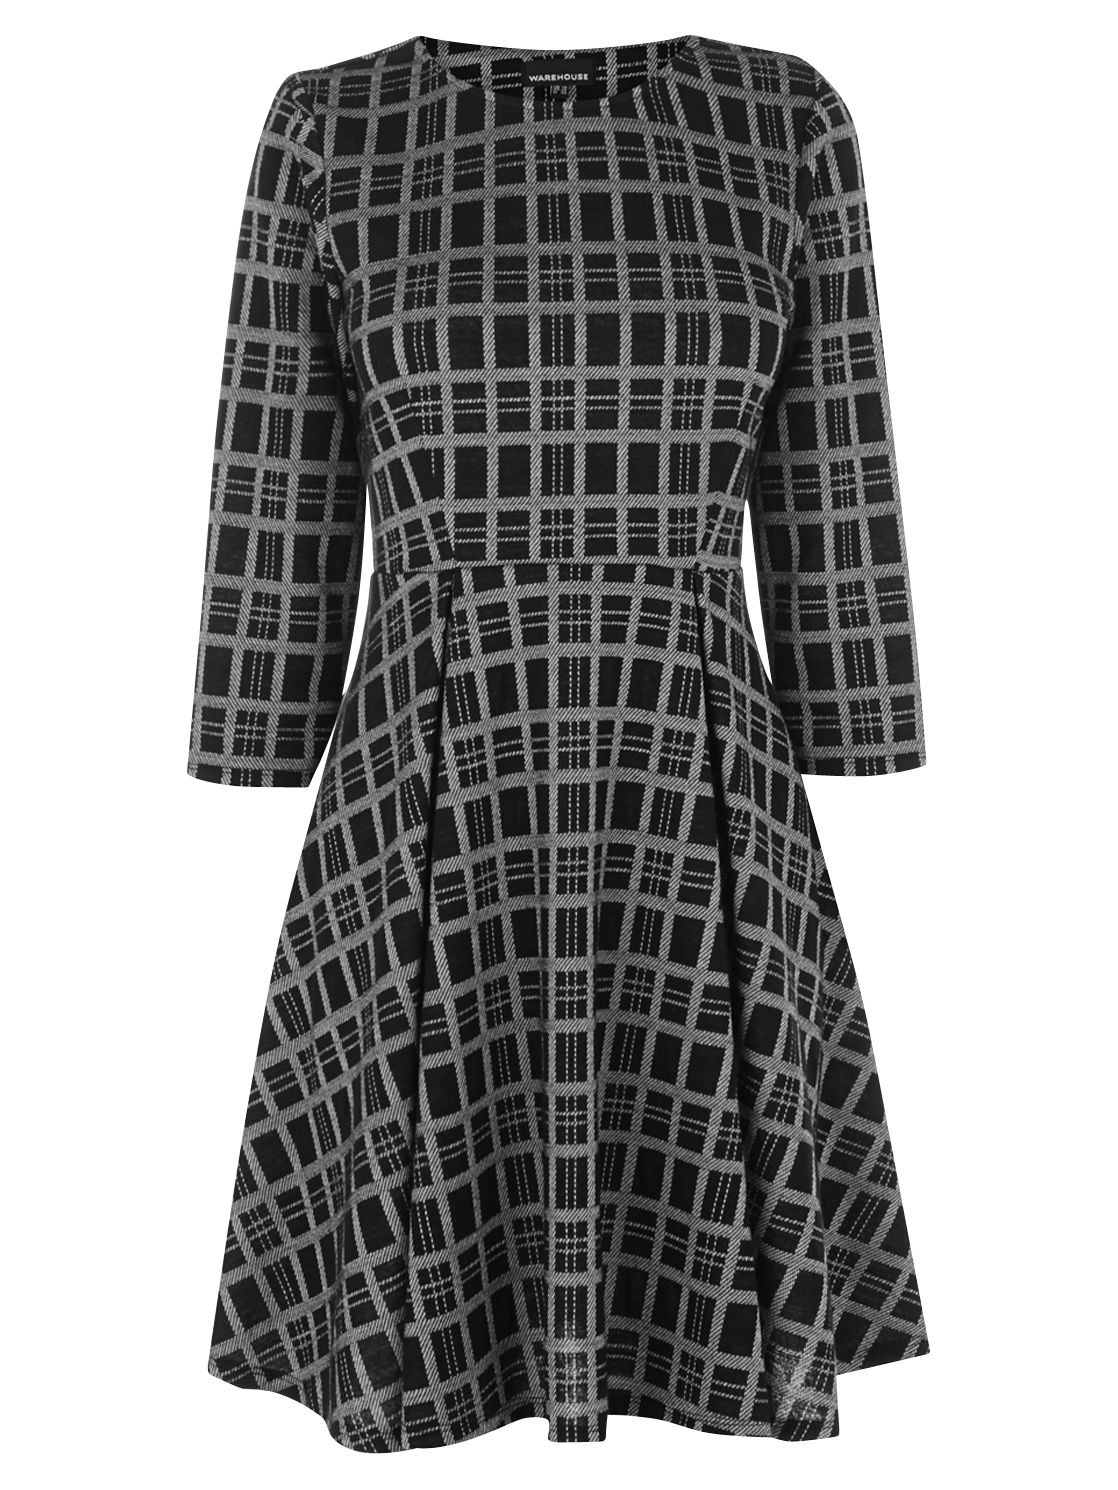 warehouse checked skater dress black, warehouse, checked, skater, dress, black, 8|10, women, womens dresses, special offers, womenswear offers, warehouse (copy), womens dresses offers, latest reductions, 1854267